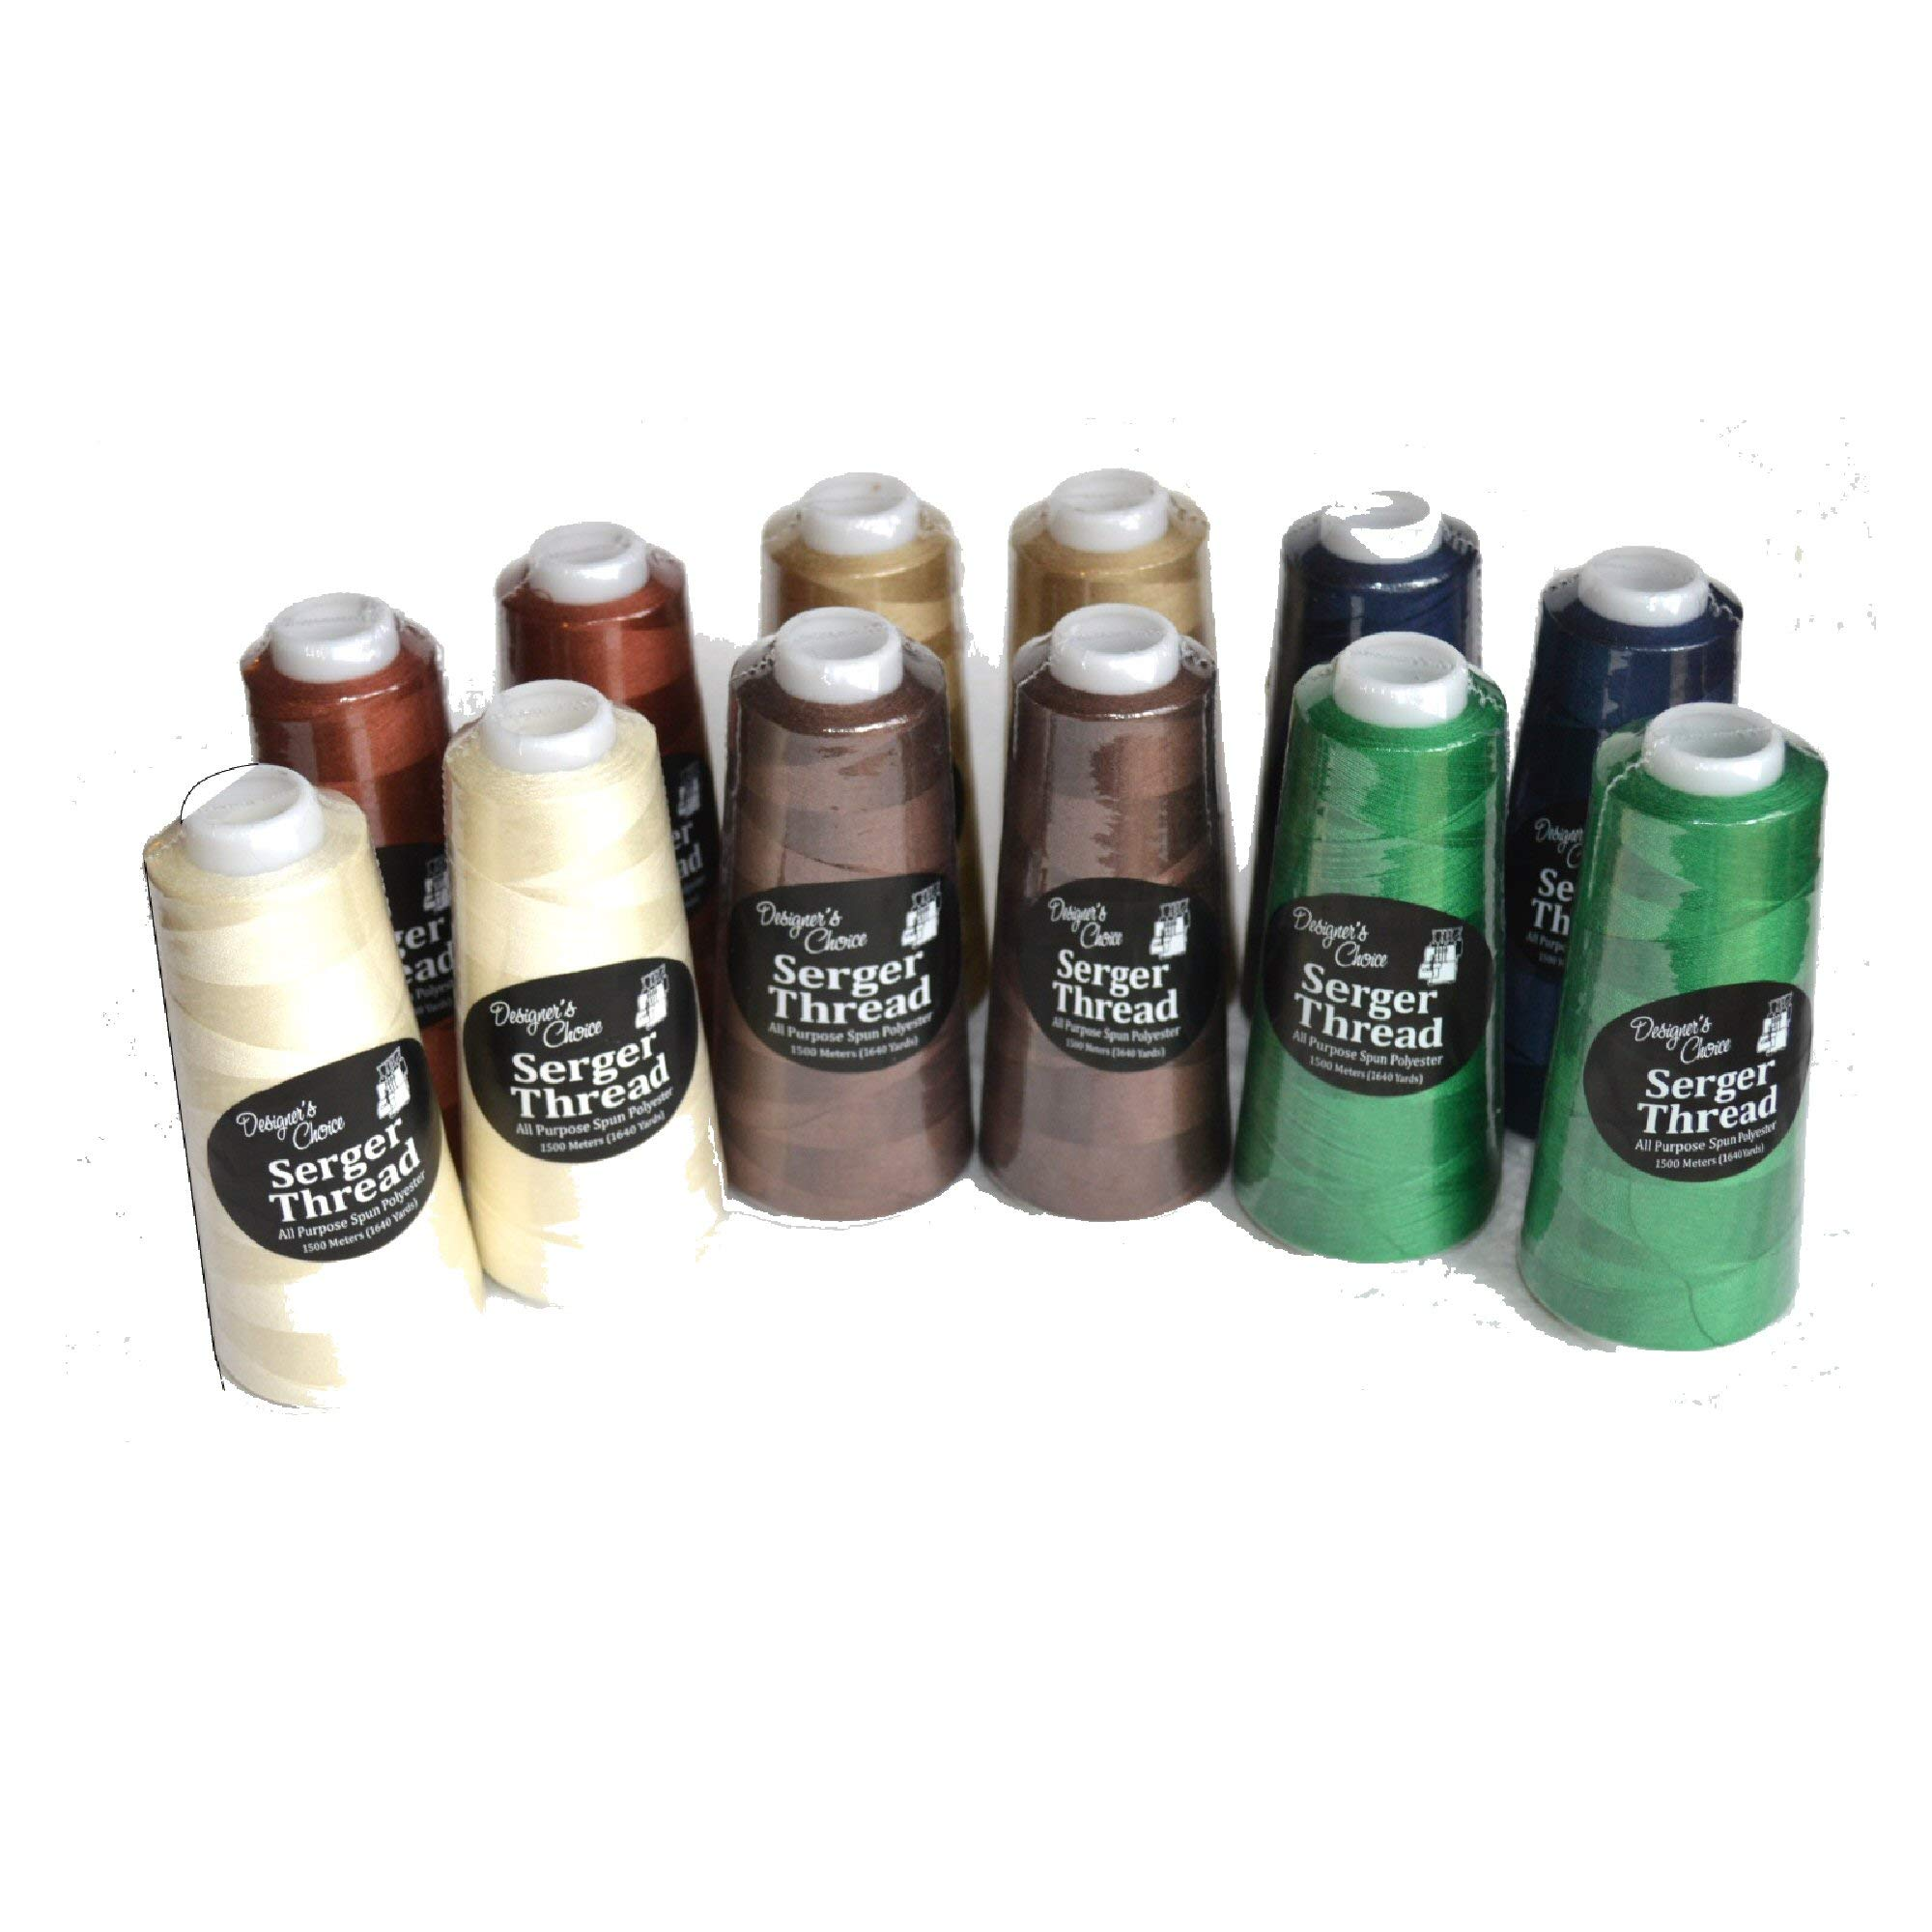 Bundle Set of 12 Earth-Tone NATURAL Serger Quilting Embroidery Thread 2 cones each of Asst Neutral Colors 1500 M by Designers Choice